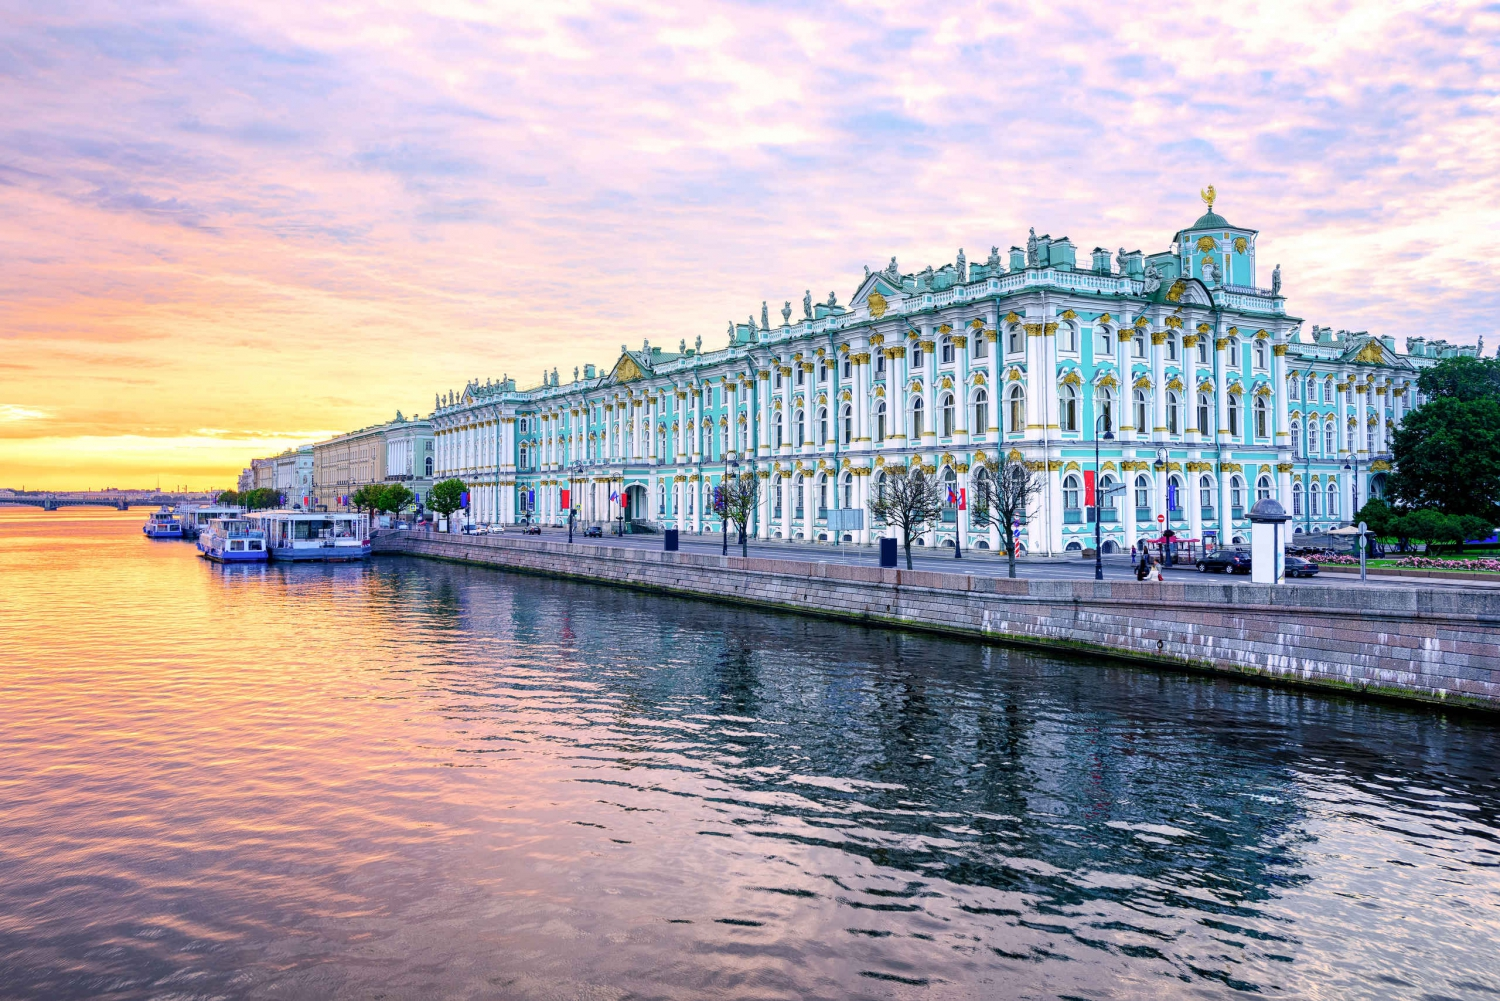 Skip the Line: Hermitage Museum Private Walking Tour